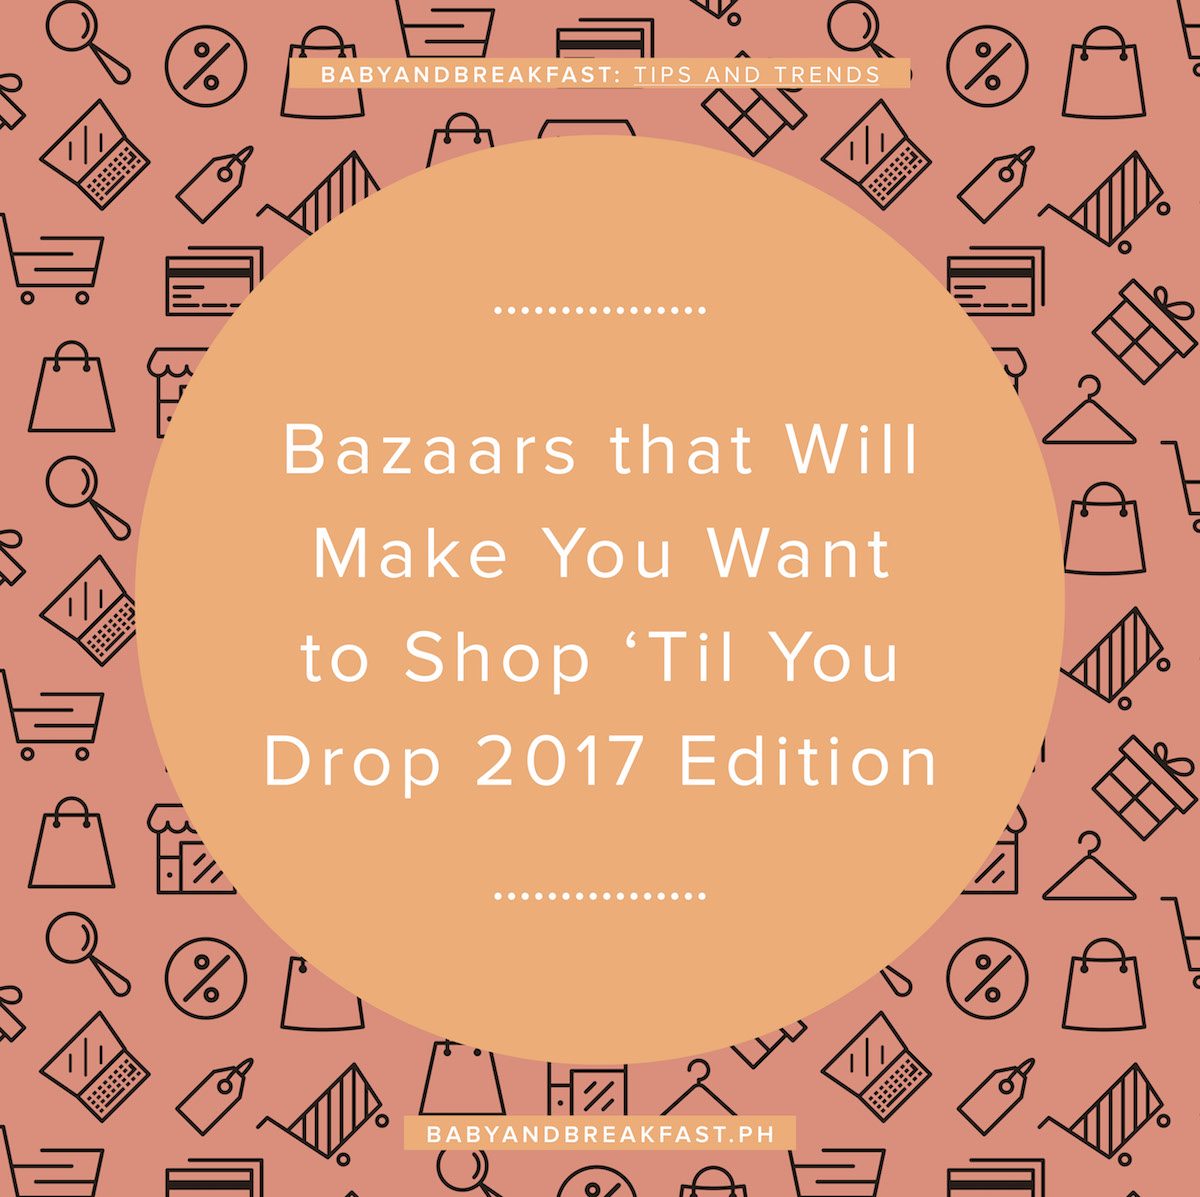 Baby and Breakfast: Tips and Trends Bazaars that Will Make You Want to Shop 'Til You Drop 2017 Edition